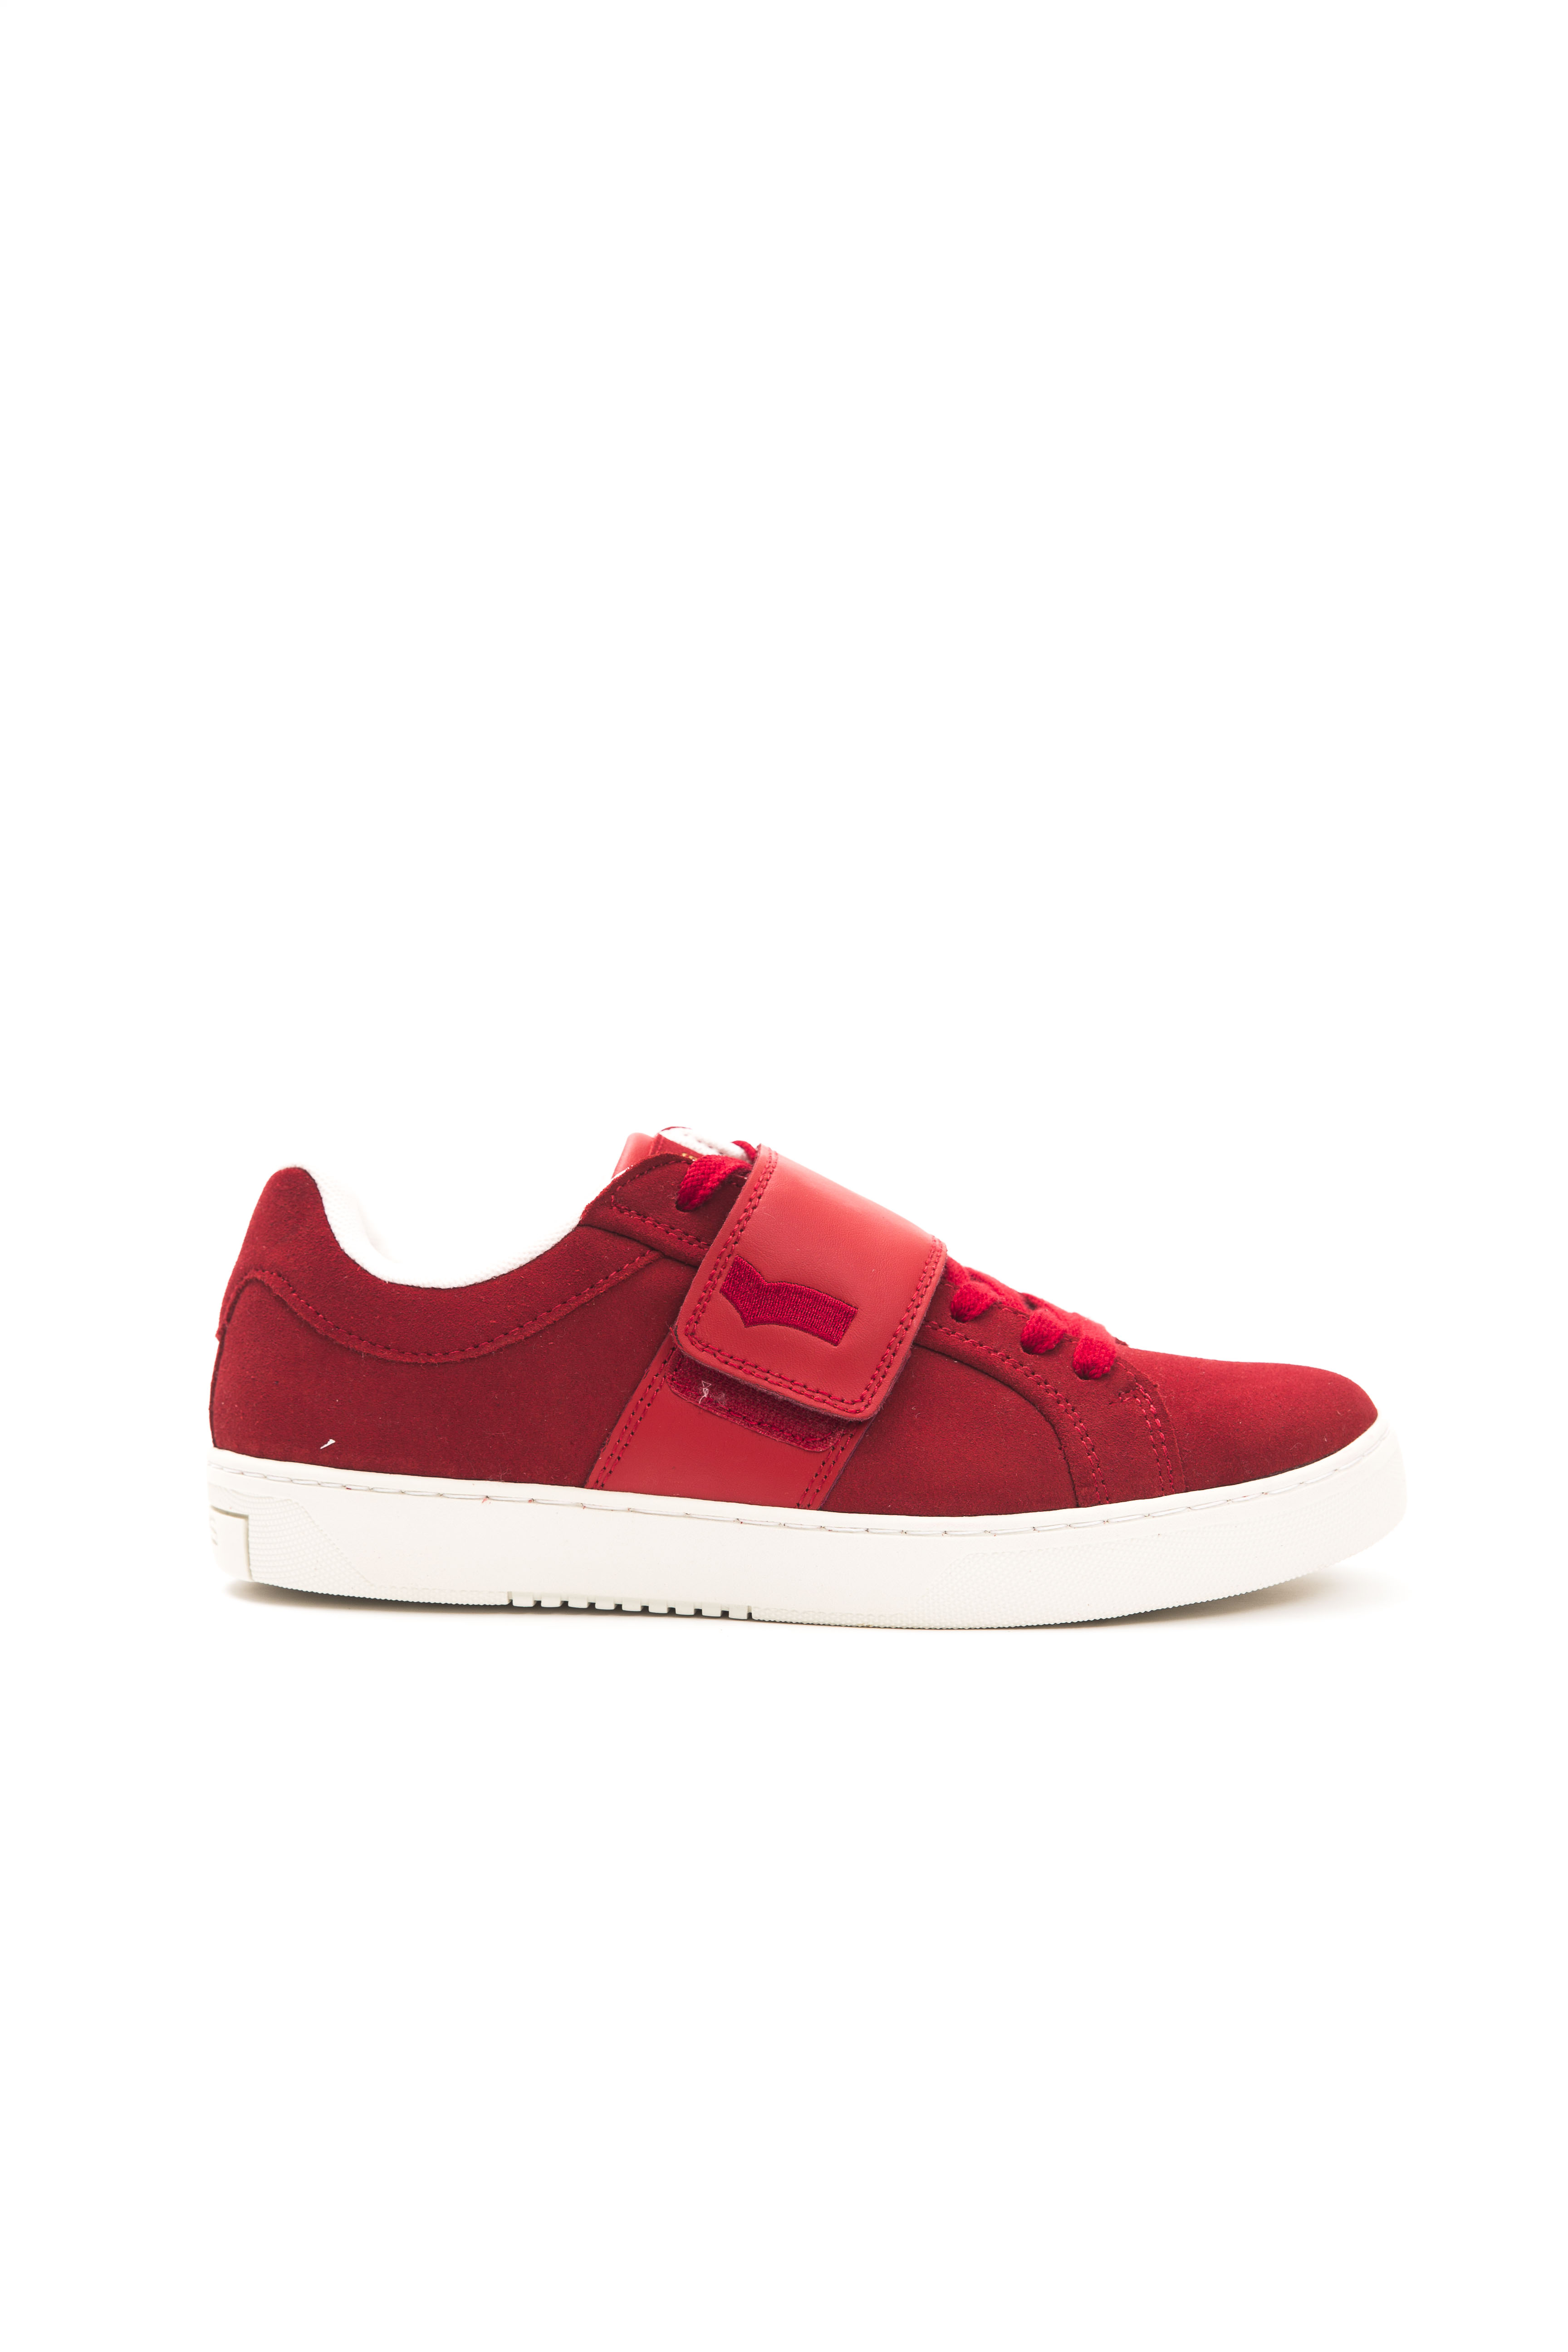 Gam814005 Rouge Homme Homme Rouge Sneakers Gas Gam814005 Gas Gas Sneakers Rouge Sneakers HIW29ED